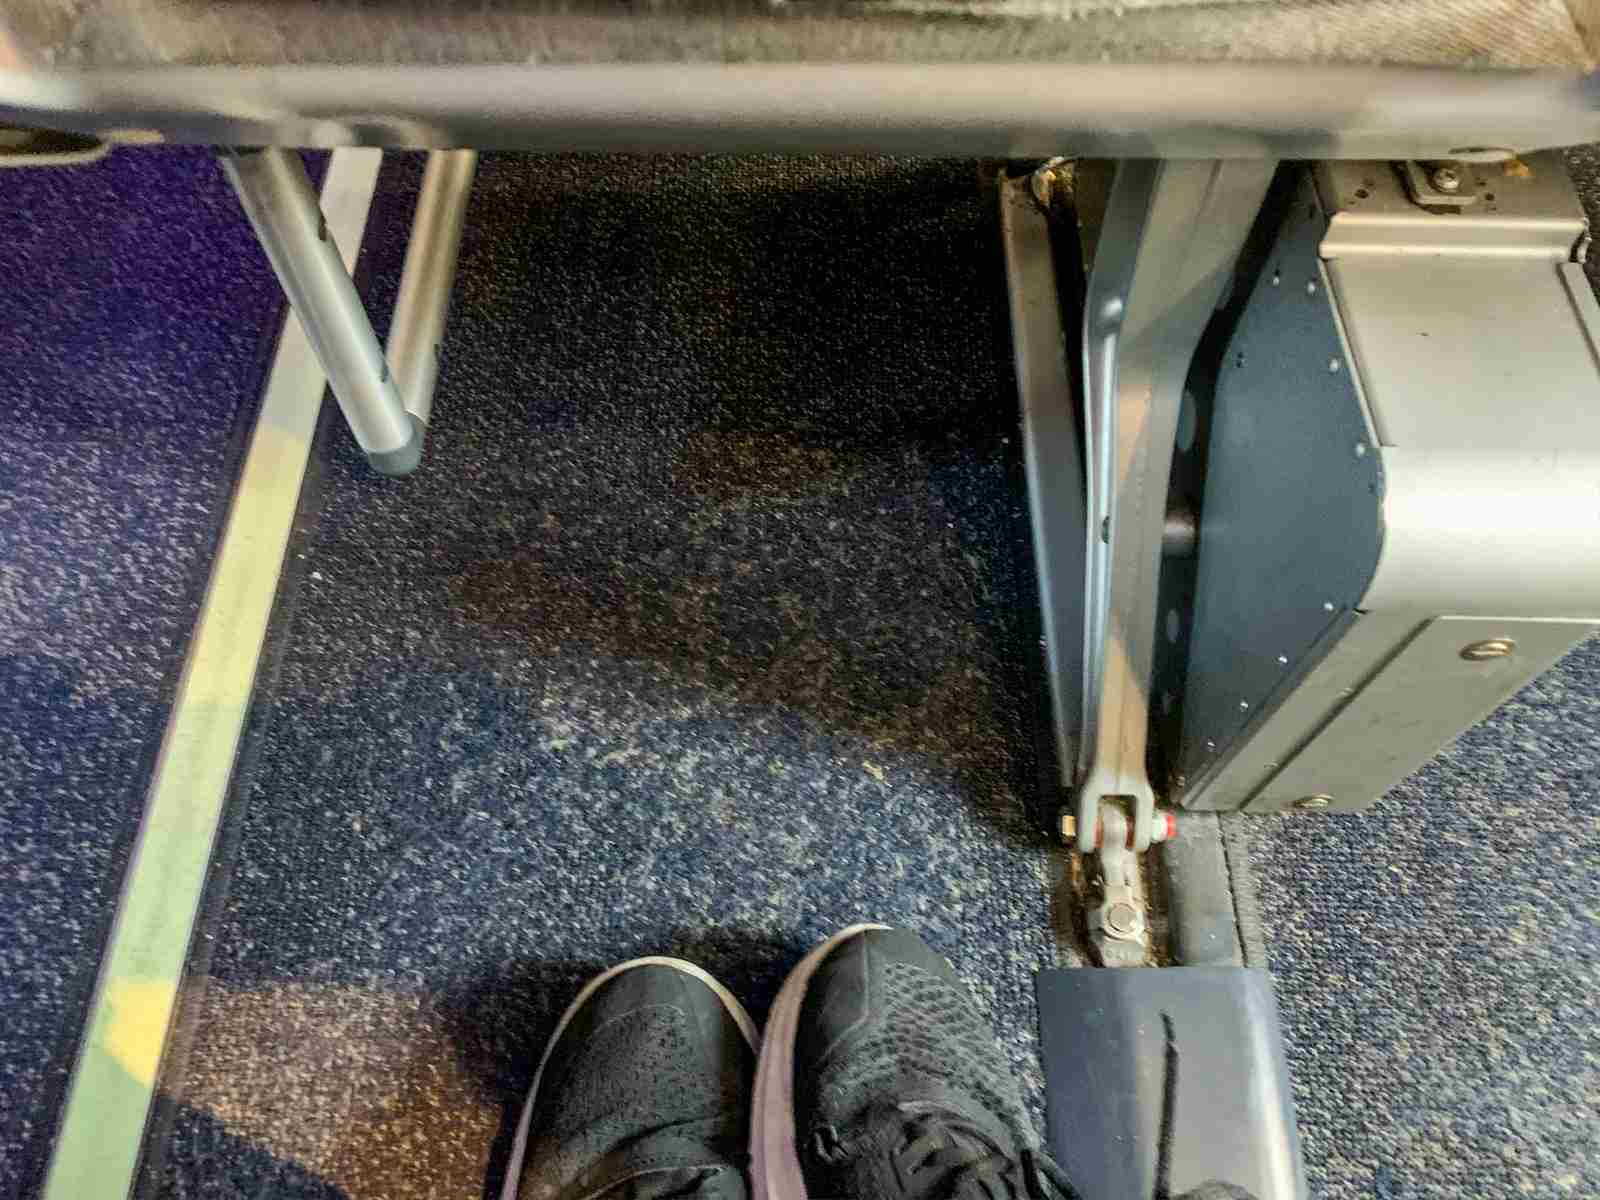 Limited foot space on Alaska Airlines coach seat. (Photo by Clint Henderson/The Points Guy)